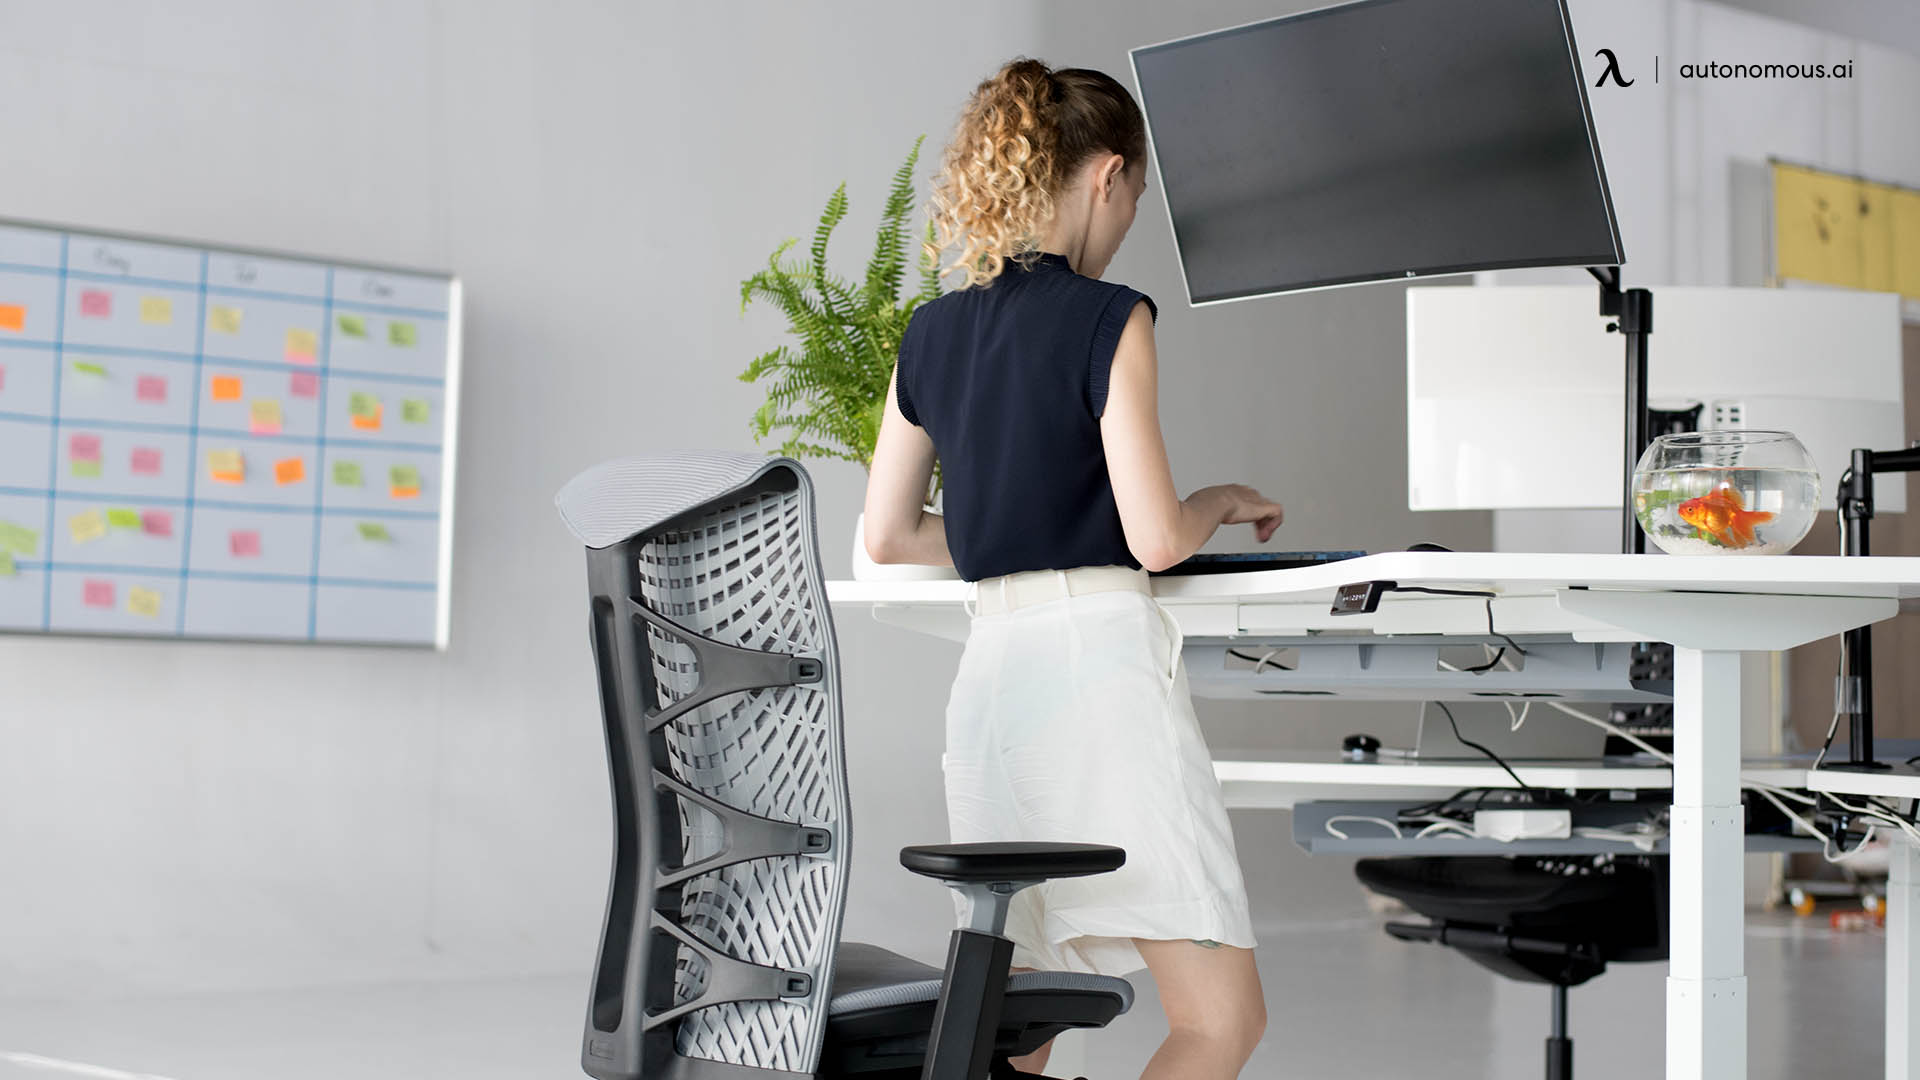 Why Should You Use a Motorized Standing Desk with Adjustable Table Legs?